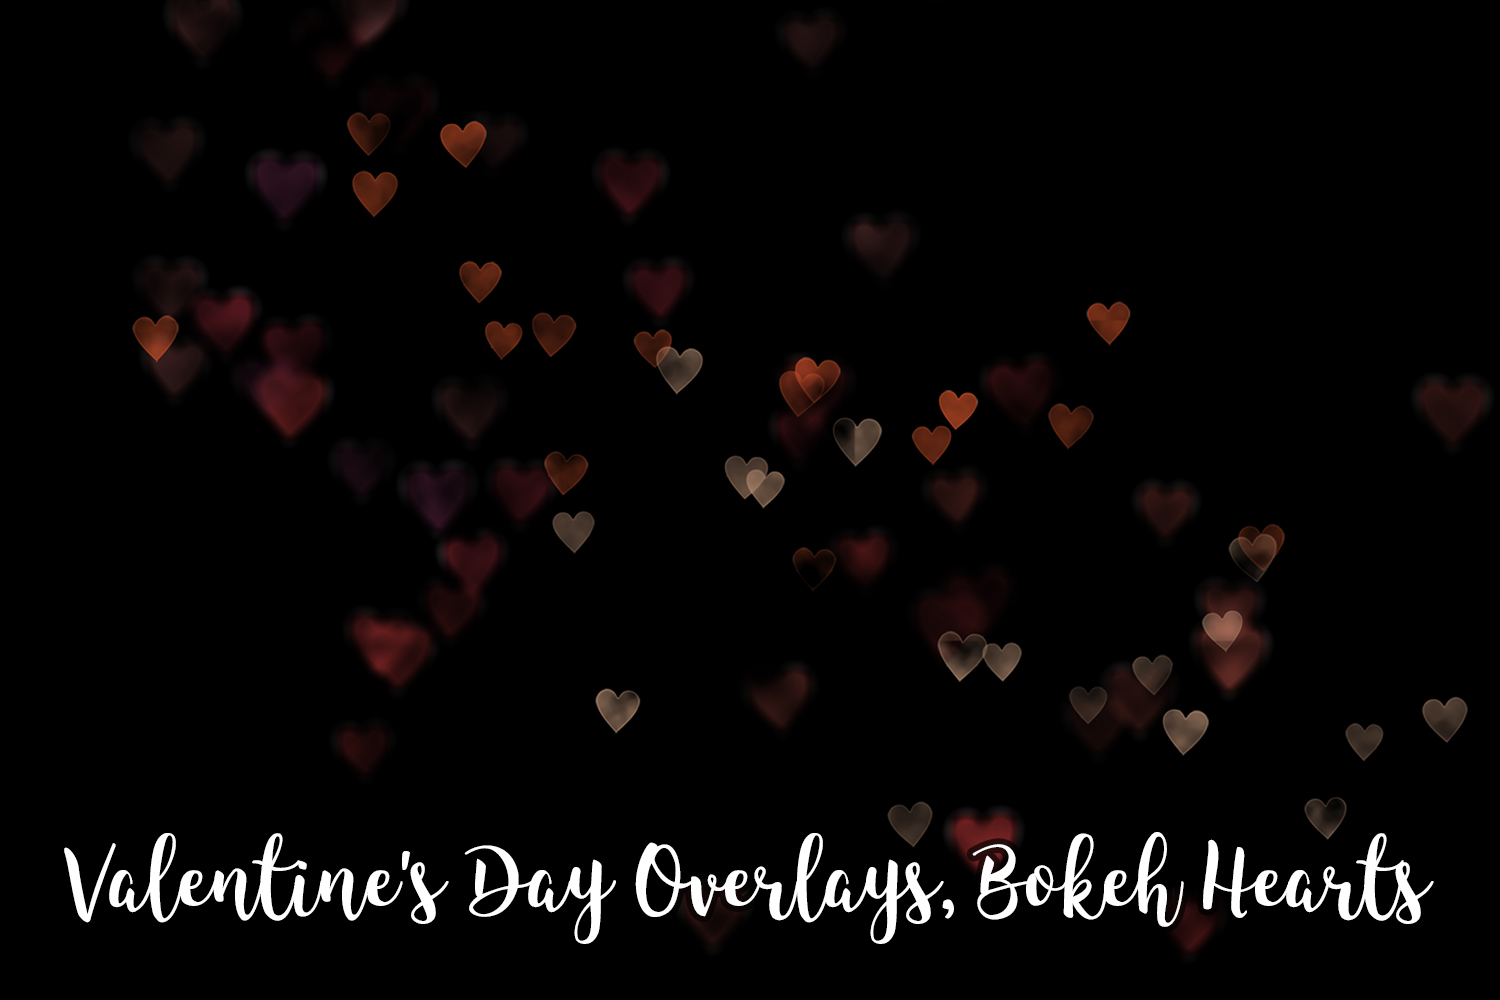 Valentine's Day Overlays, Bokeh Hearts Overlays example image 2